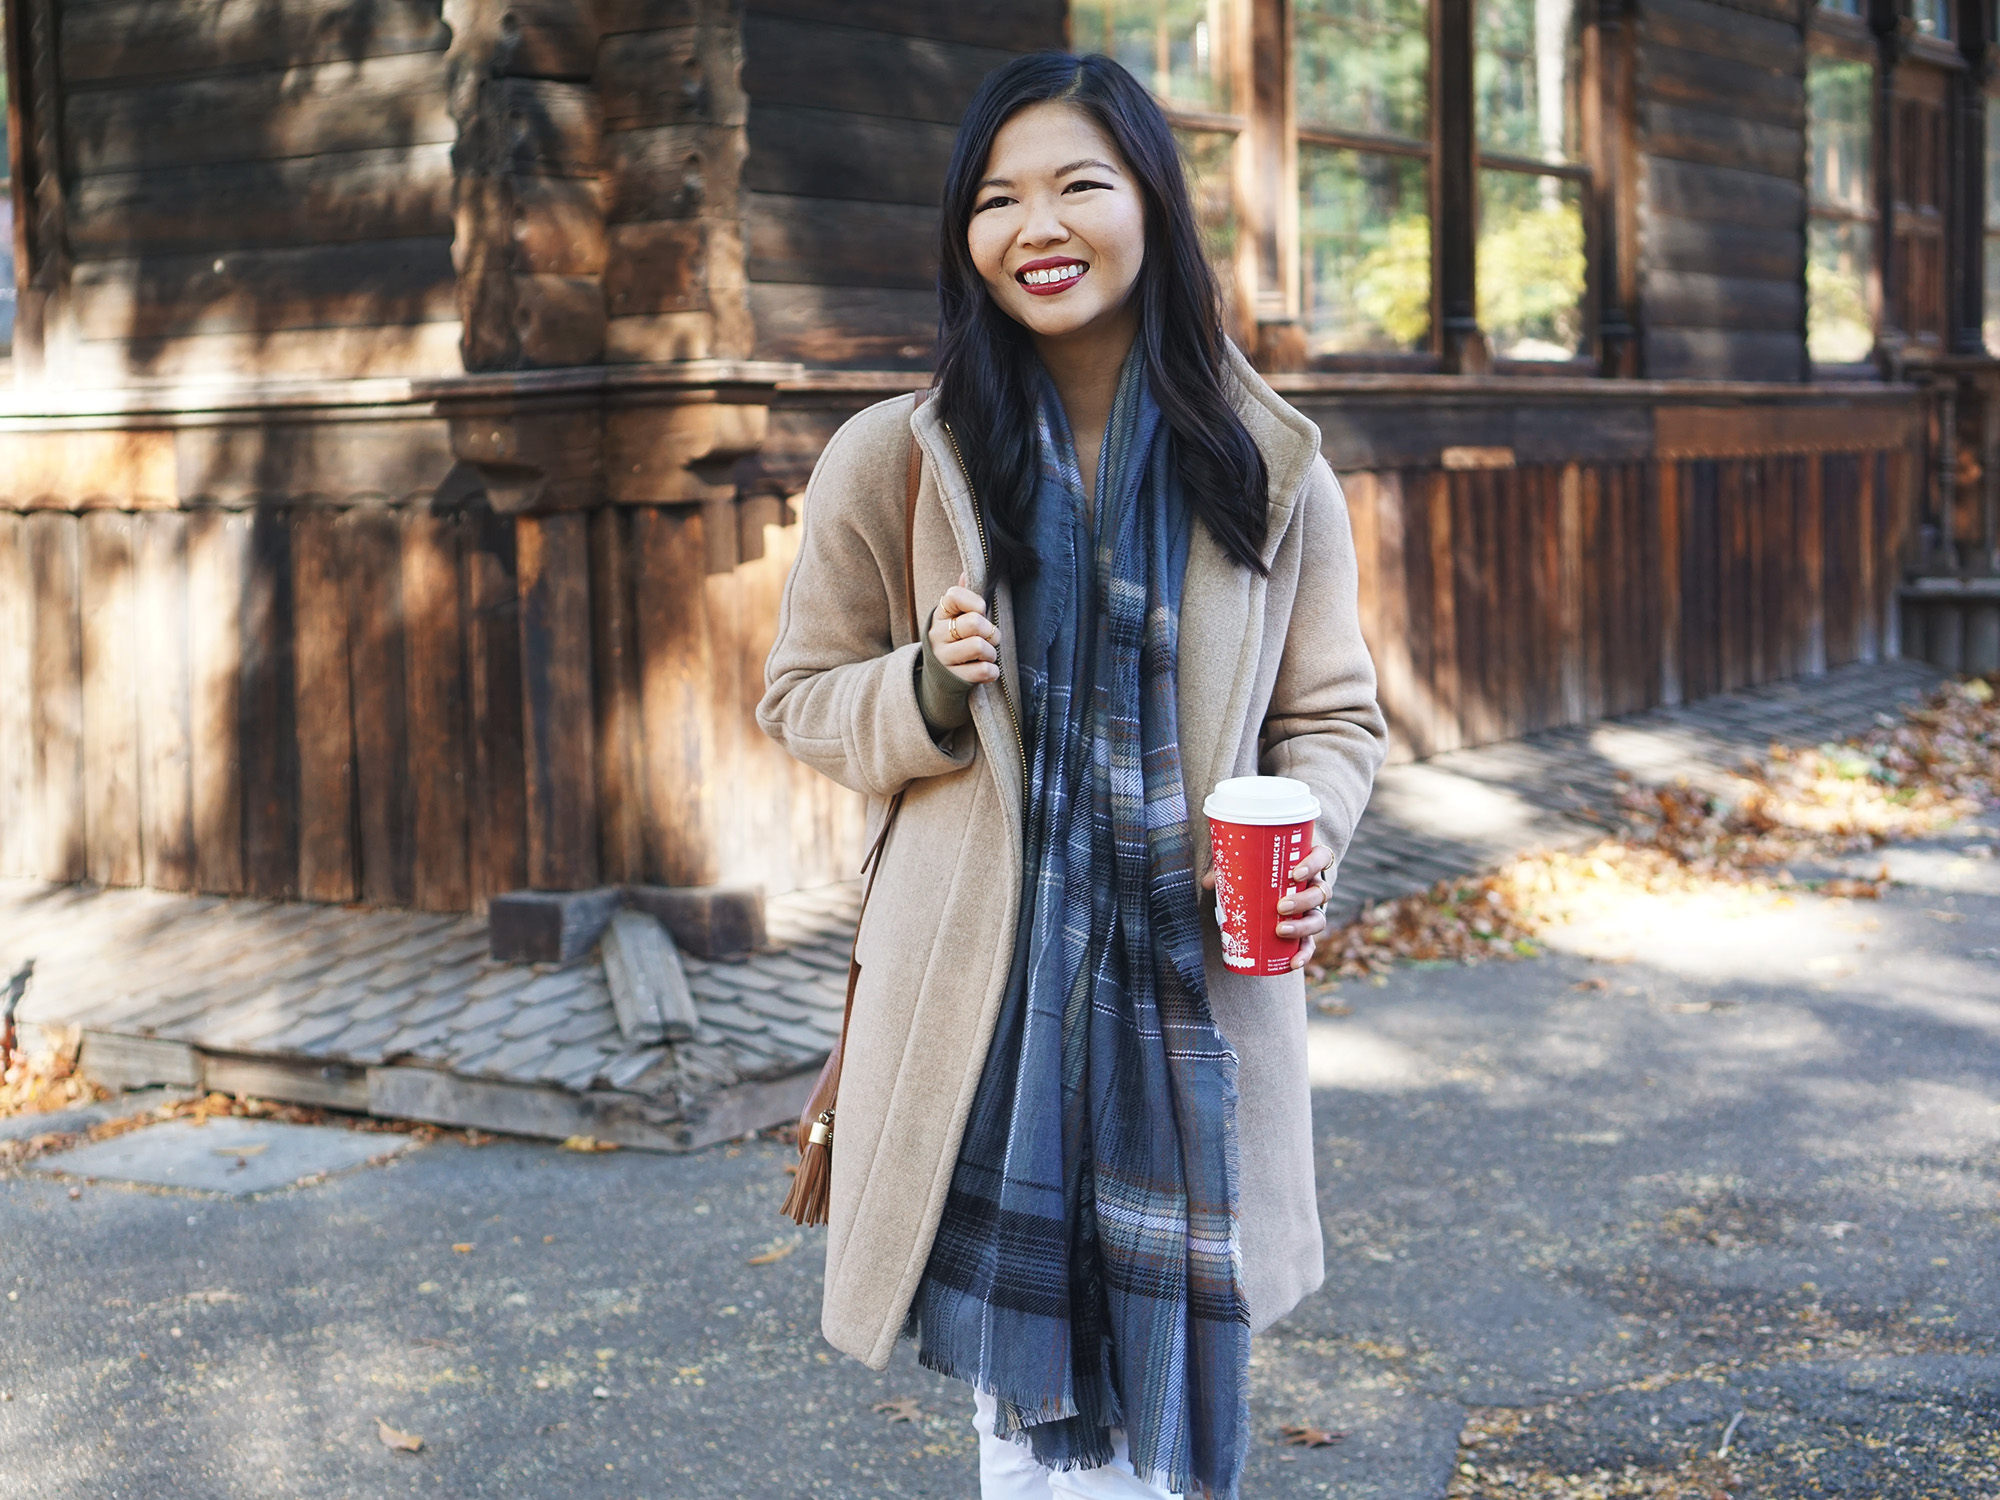 Casual Winter Outfit: Camel Coat & Plaid Scarf